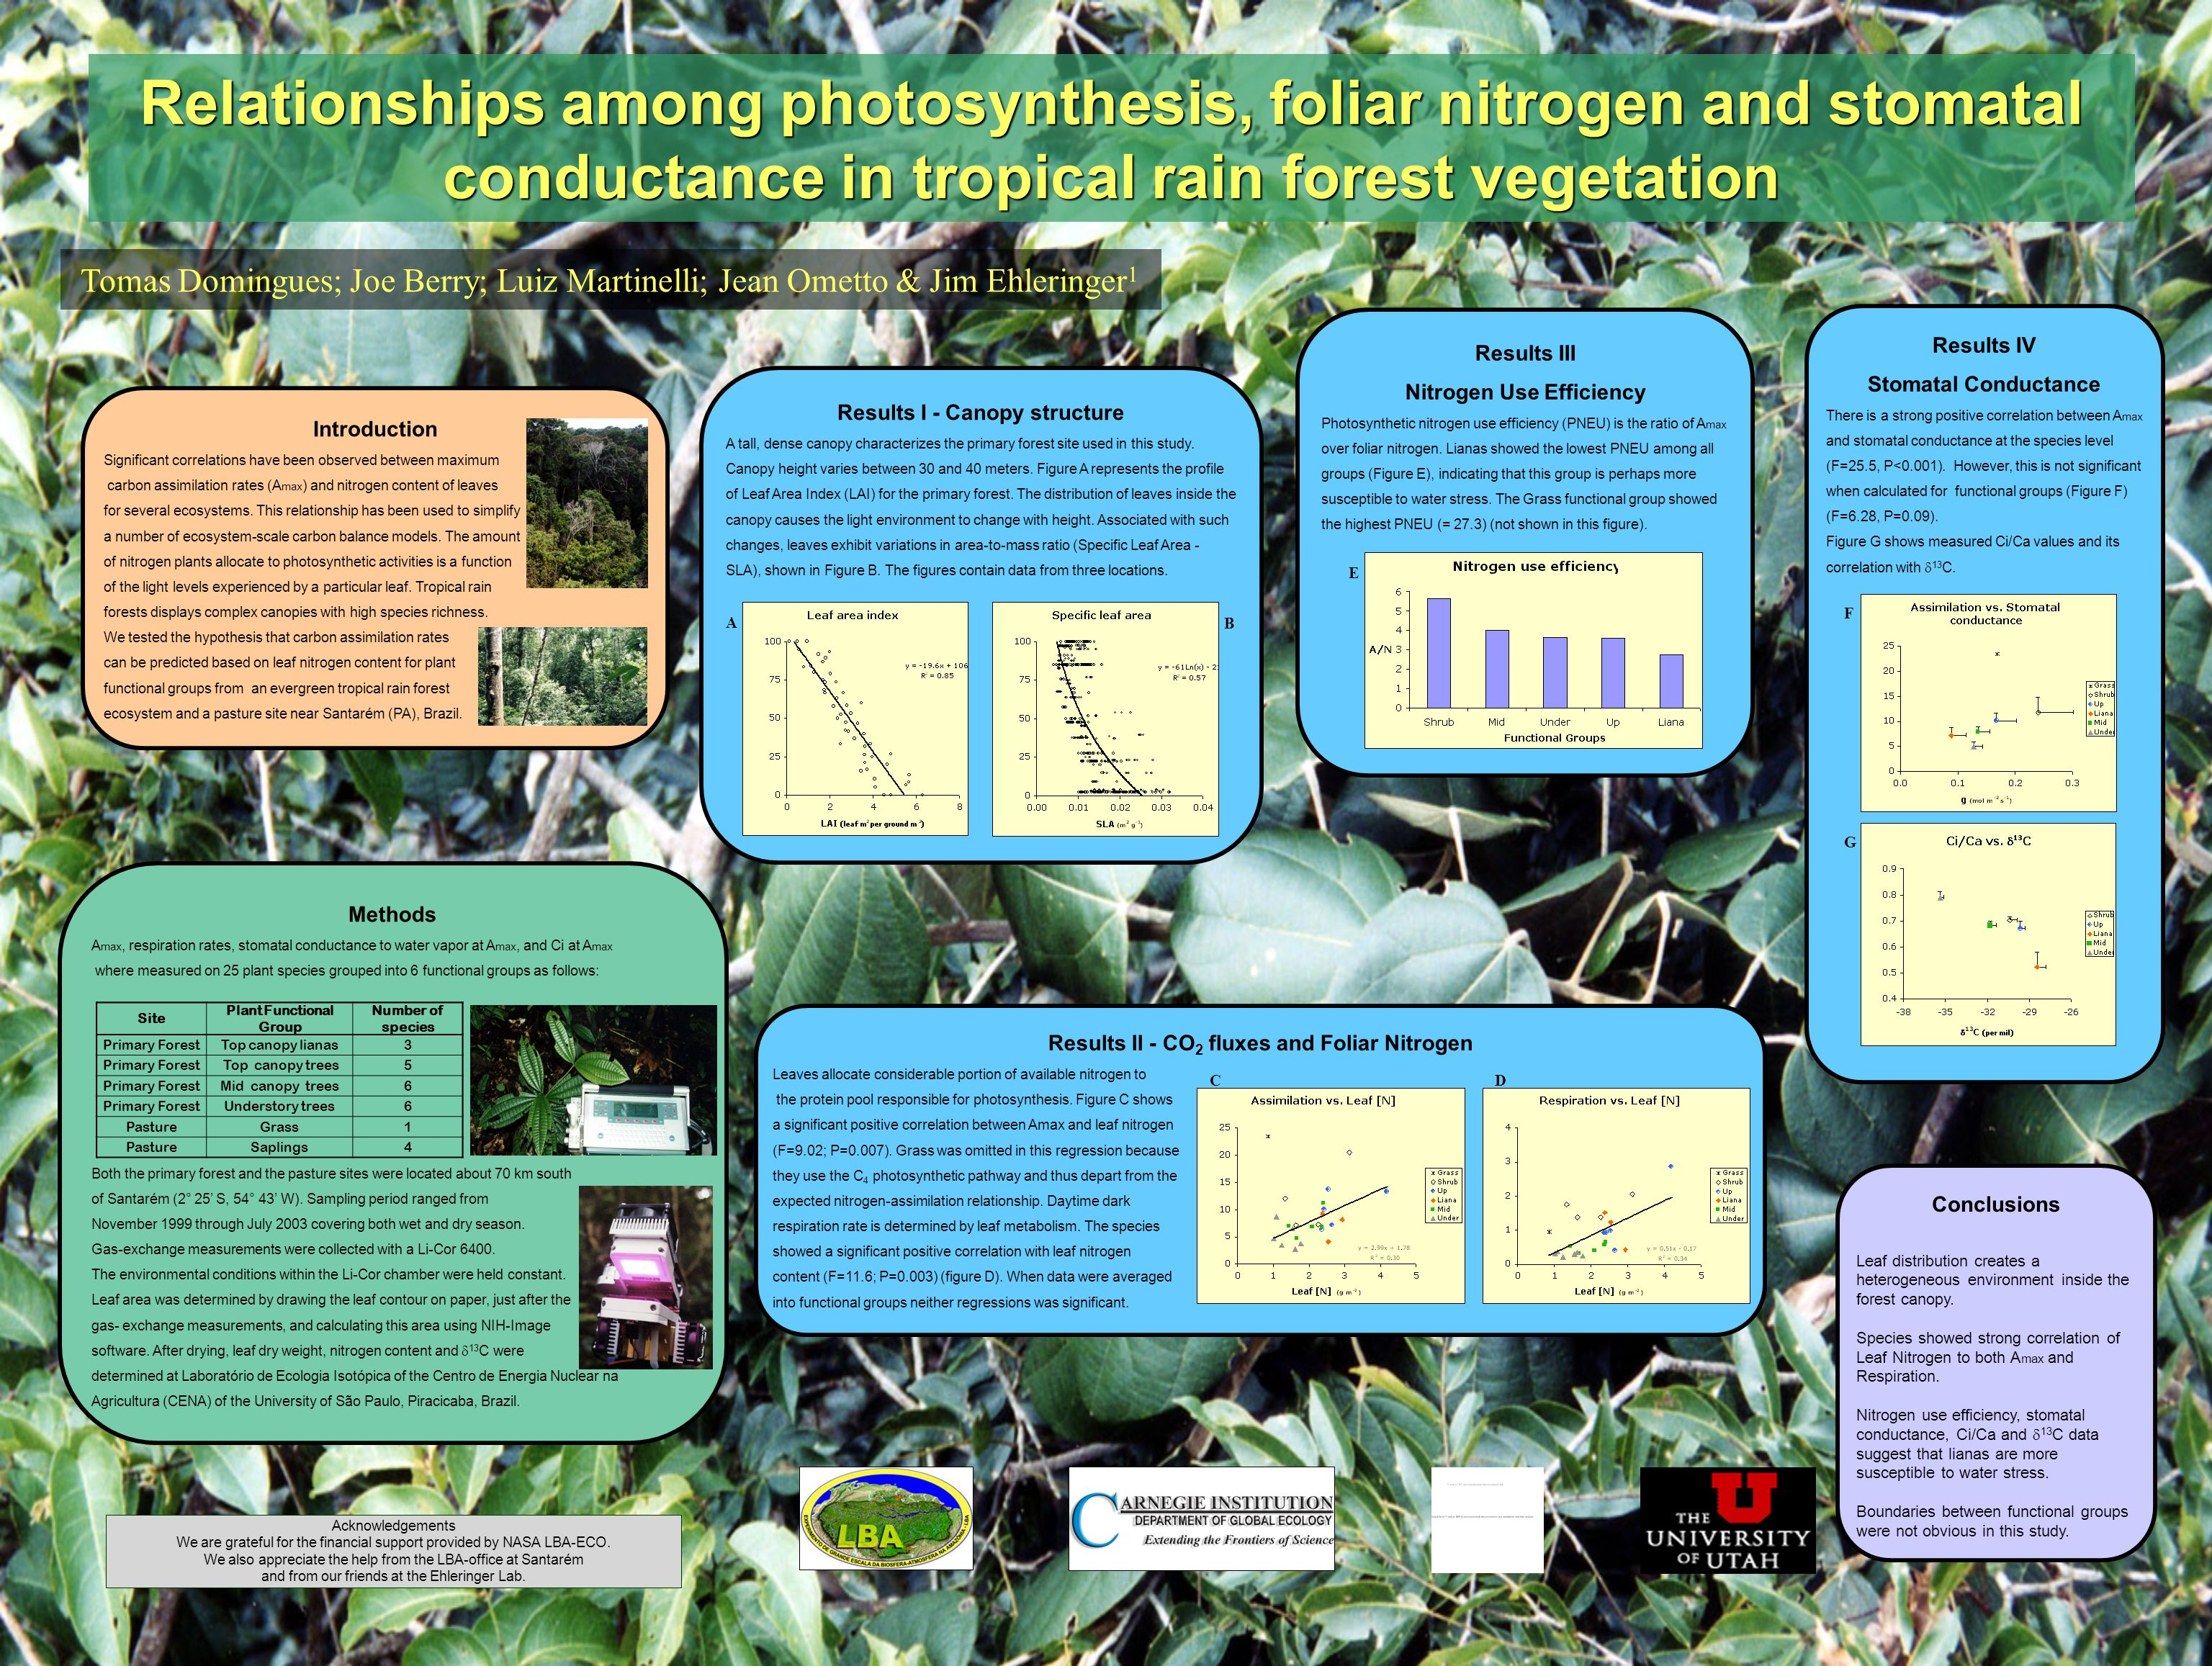 Relationships among photosynthesis, foliar nitrogen and stomatal conductance in tropical rain forest vegetation Tomas Domingues; Joe Berry; Luiz Martinelli; Jean Ometto & Jim Ehleringer 1 Introduction Significant correlations have been observed between maximum carbon assimilation rates (A max ) and nitrogen content of leaves for several ecosystems.